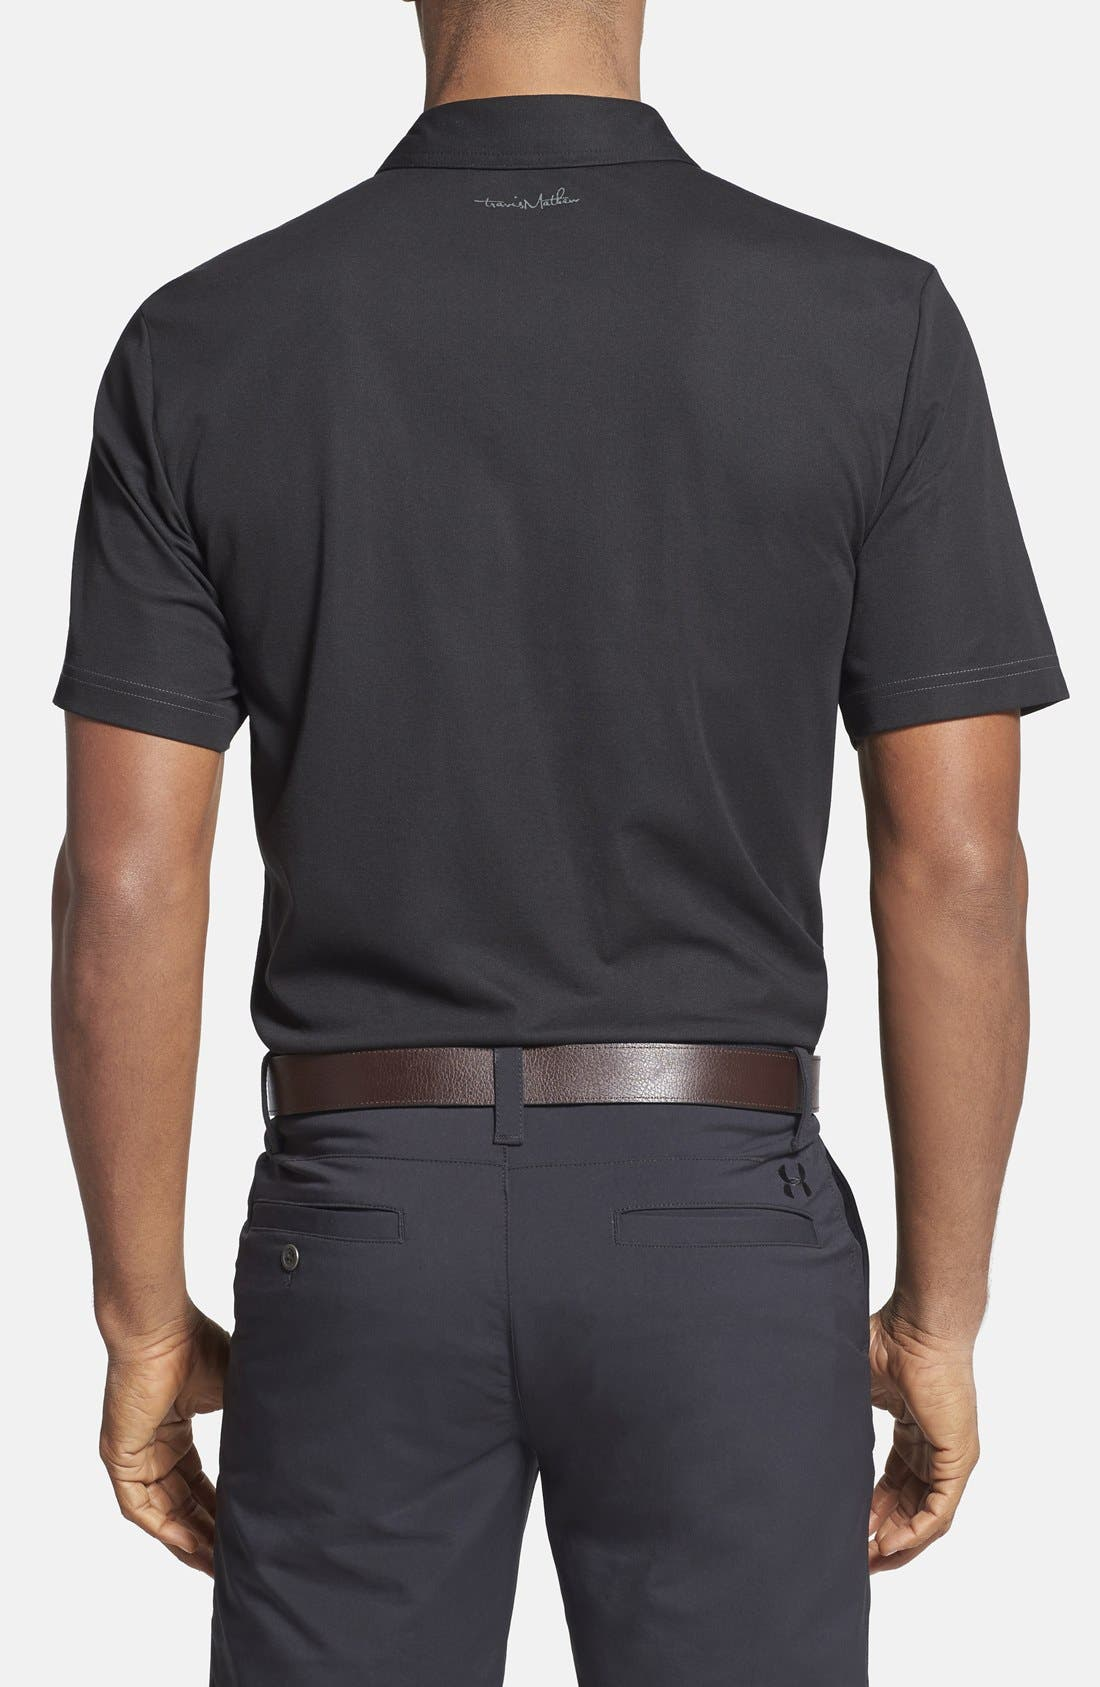 TRAVIS MATHEW,                             'Crenshaw' Trim Fit Golf Polo,                             Alternate thumbnail 2, color,                             001